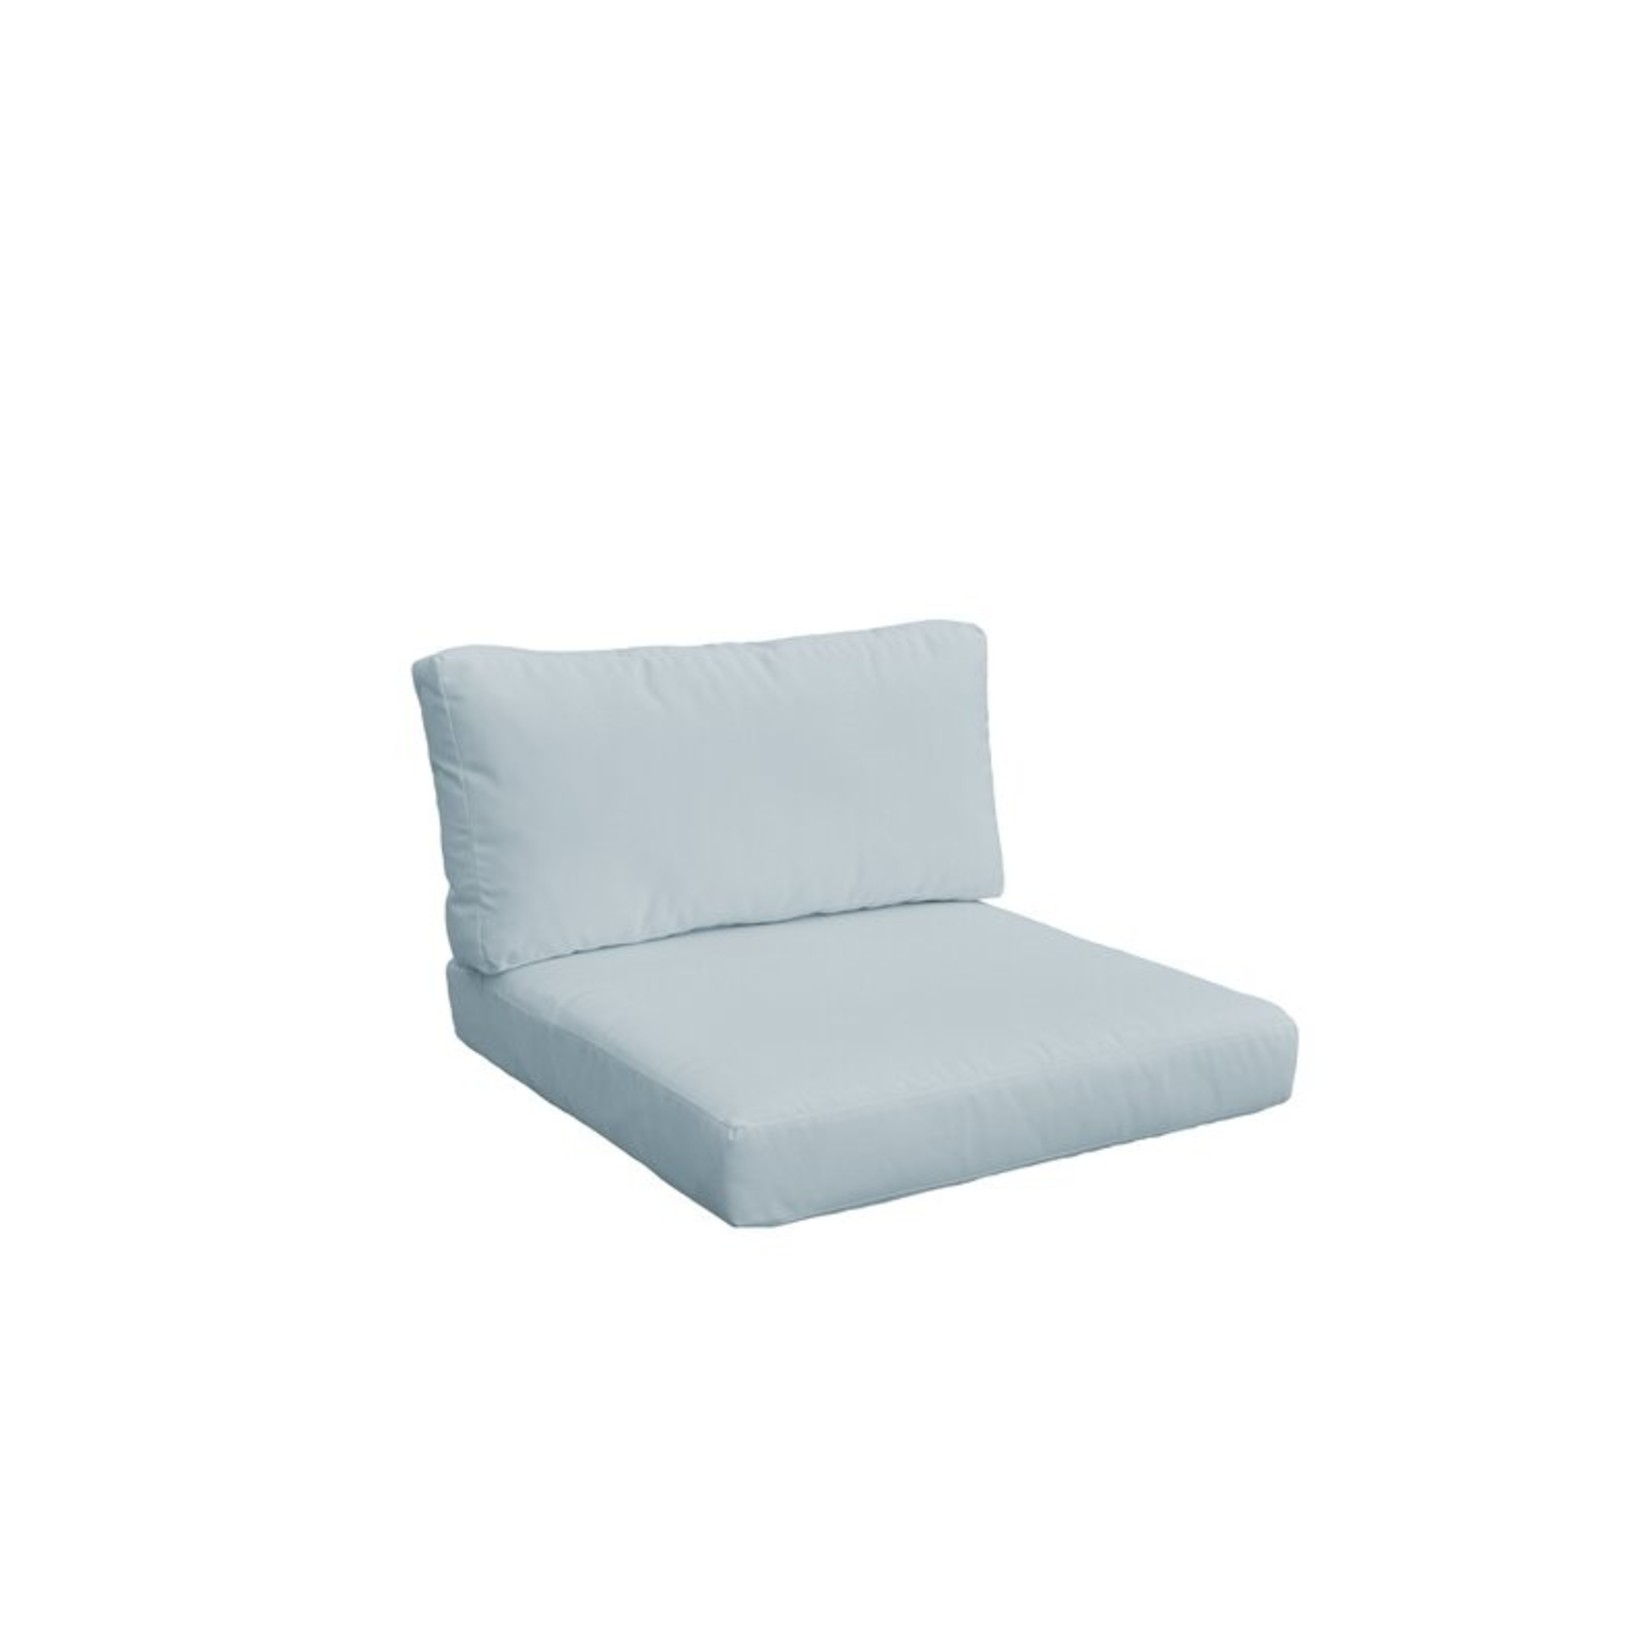 *7 Piece -  Fairfield  Indoor/Outdoor Cushion Covers  - Spa - Back Covers Only -  Final Sale